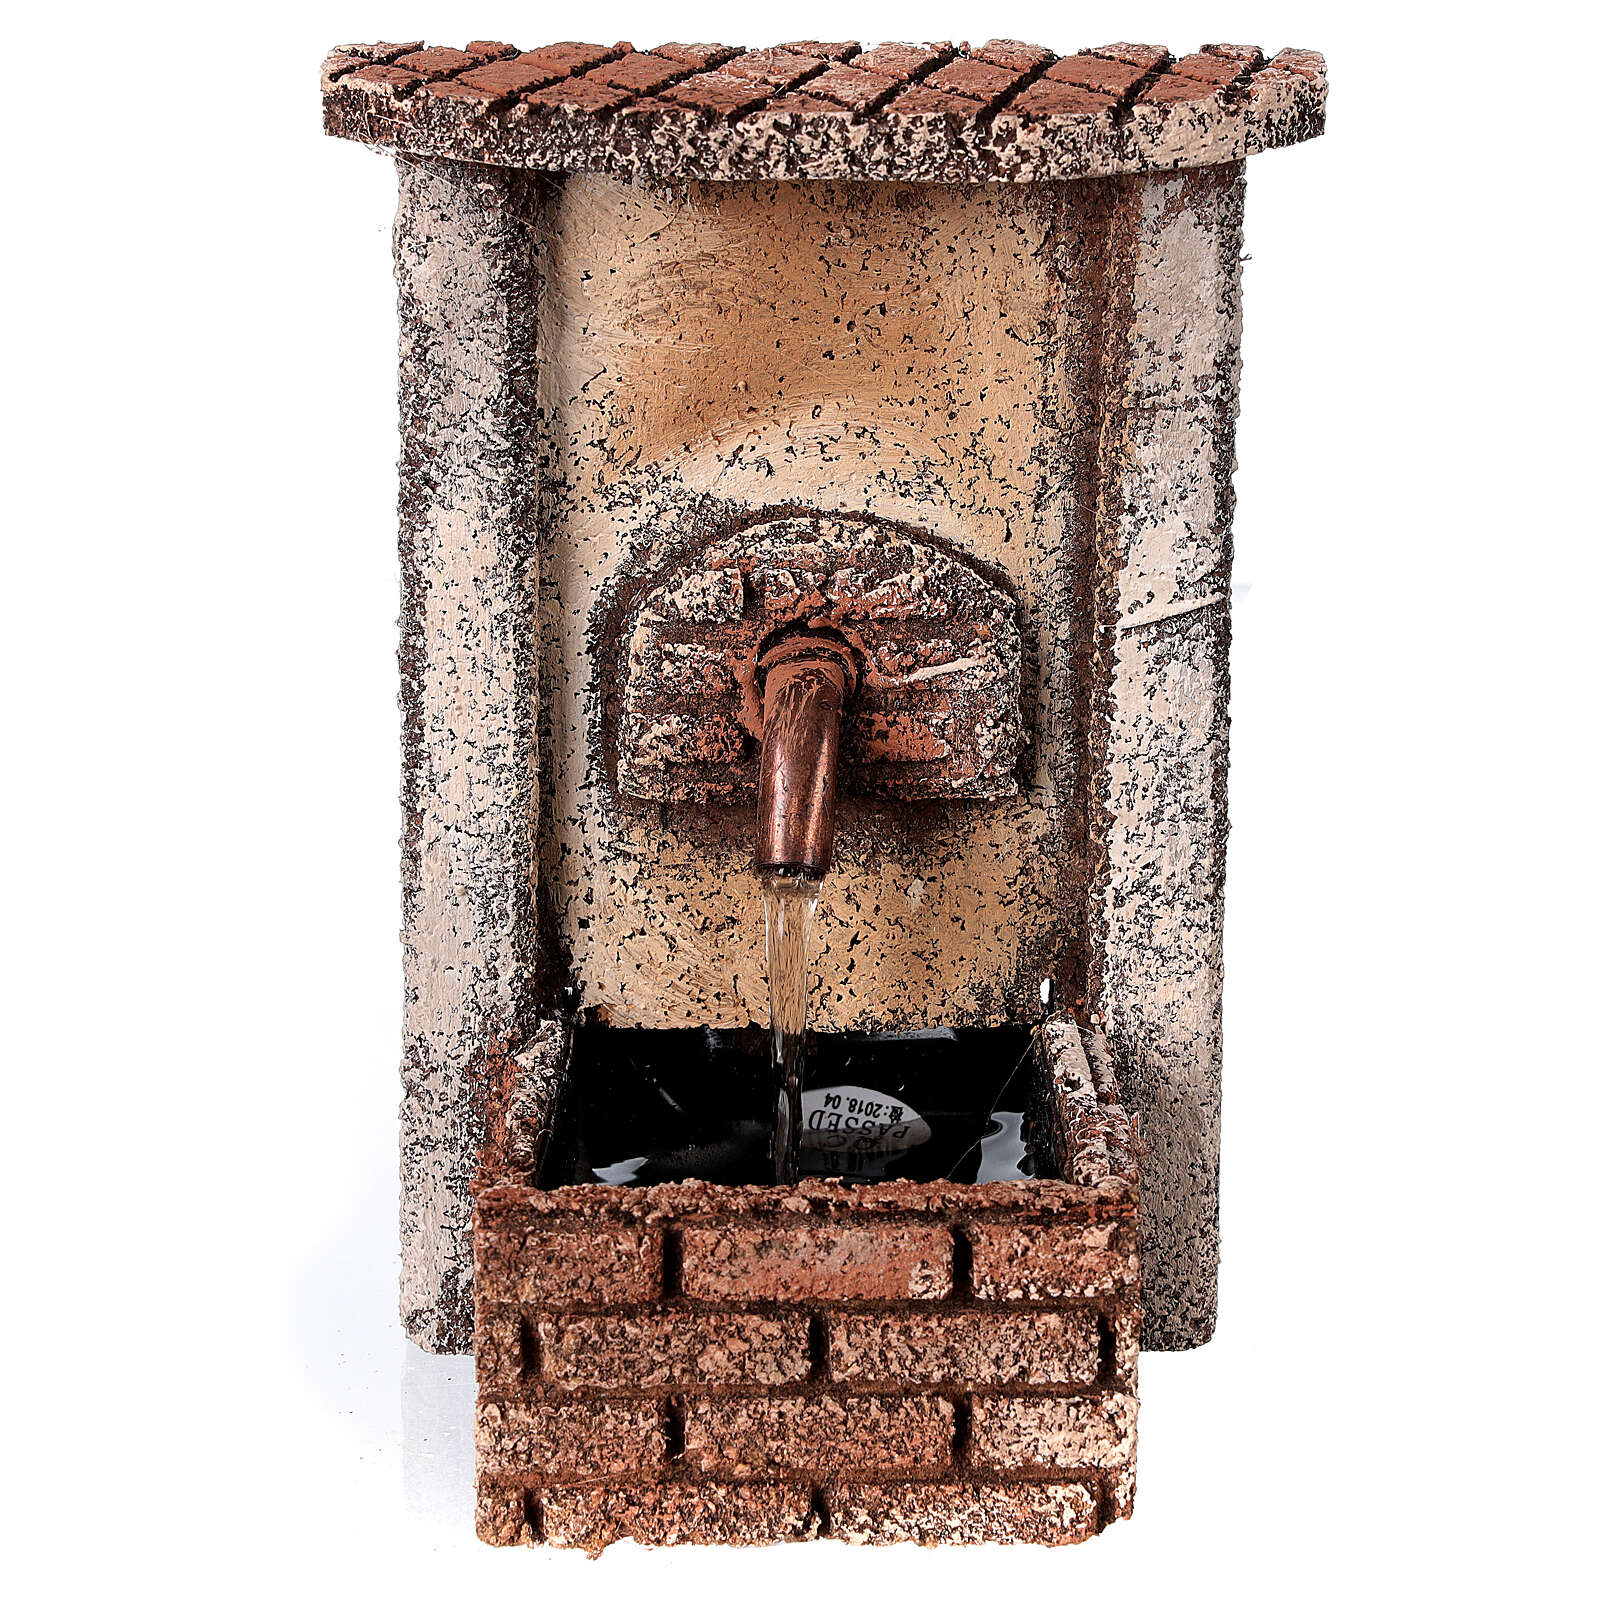 Rectangular fountain with pump 15x10x10 cm for 10-12 cm figurines 4